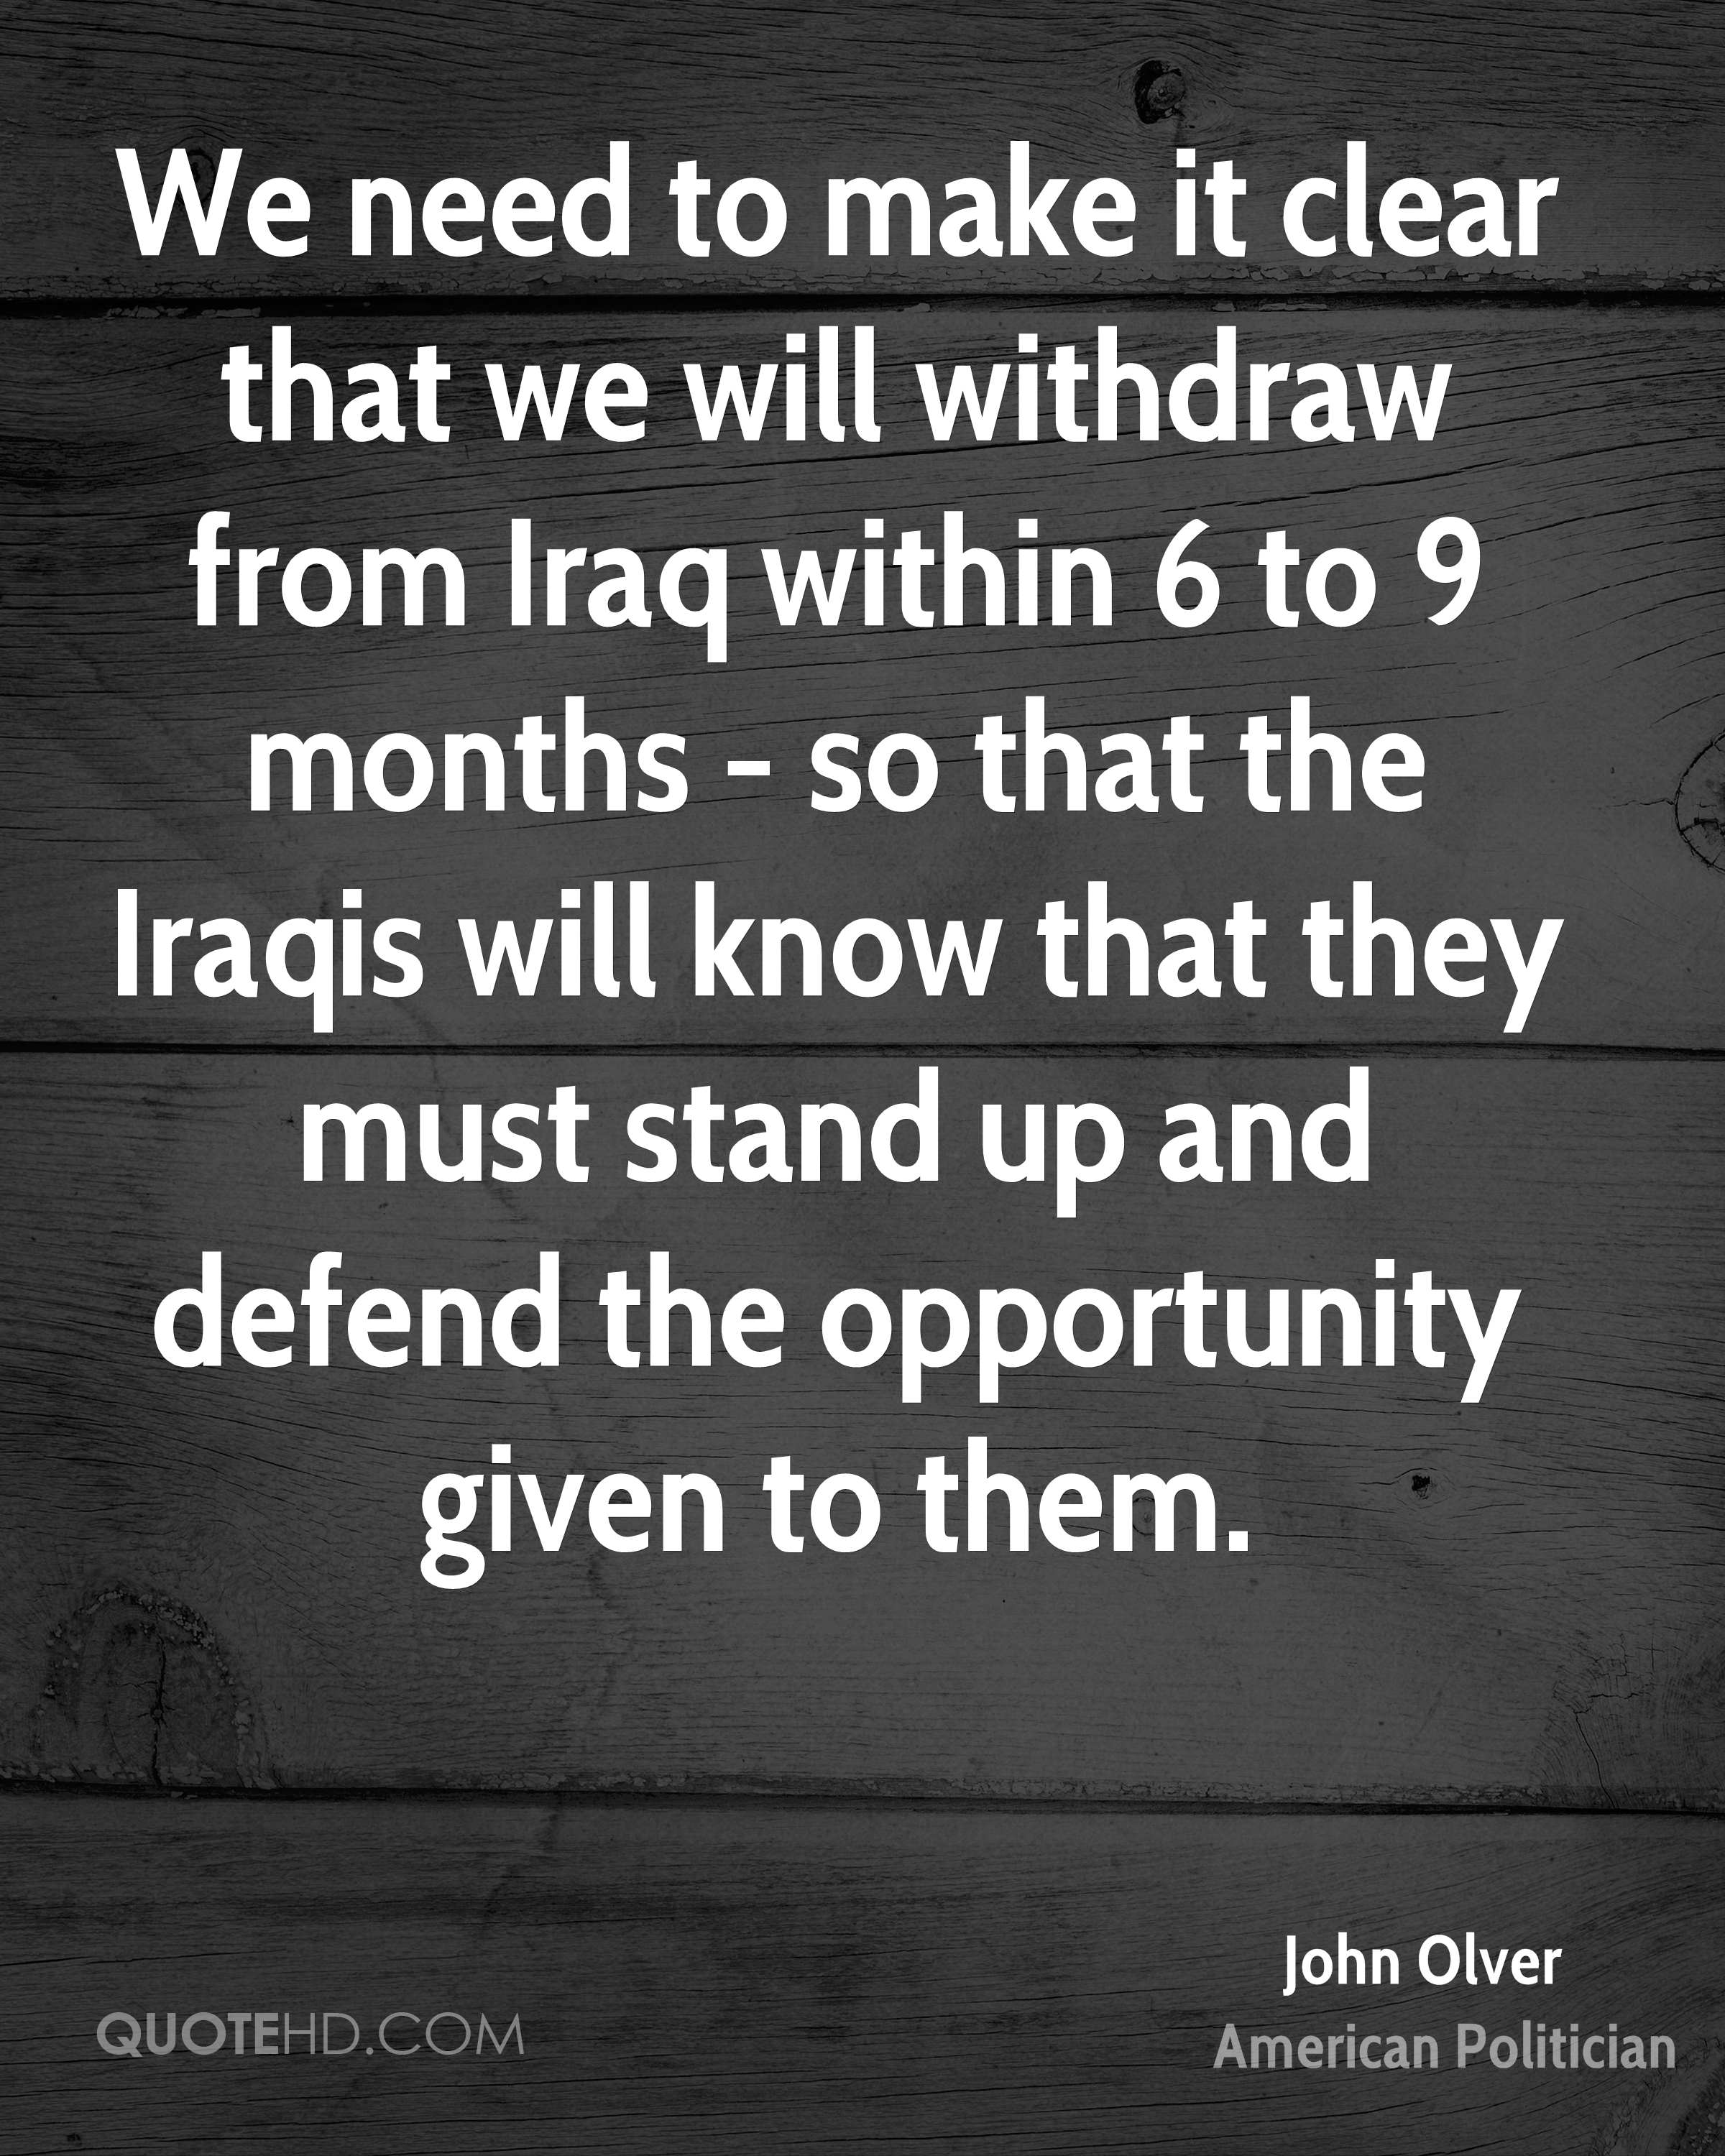 We need to make it clear that we will withdraw from Iraq within 6 to 9 months - so that the Iraqis will know that they must stand up and defend the opportunity given to them.